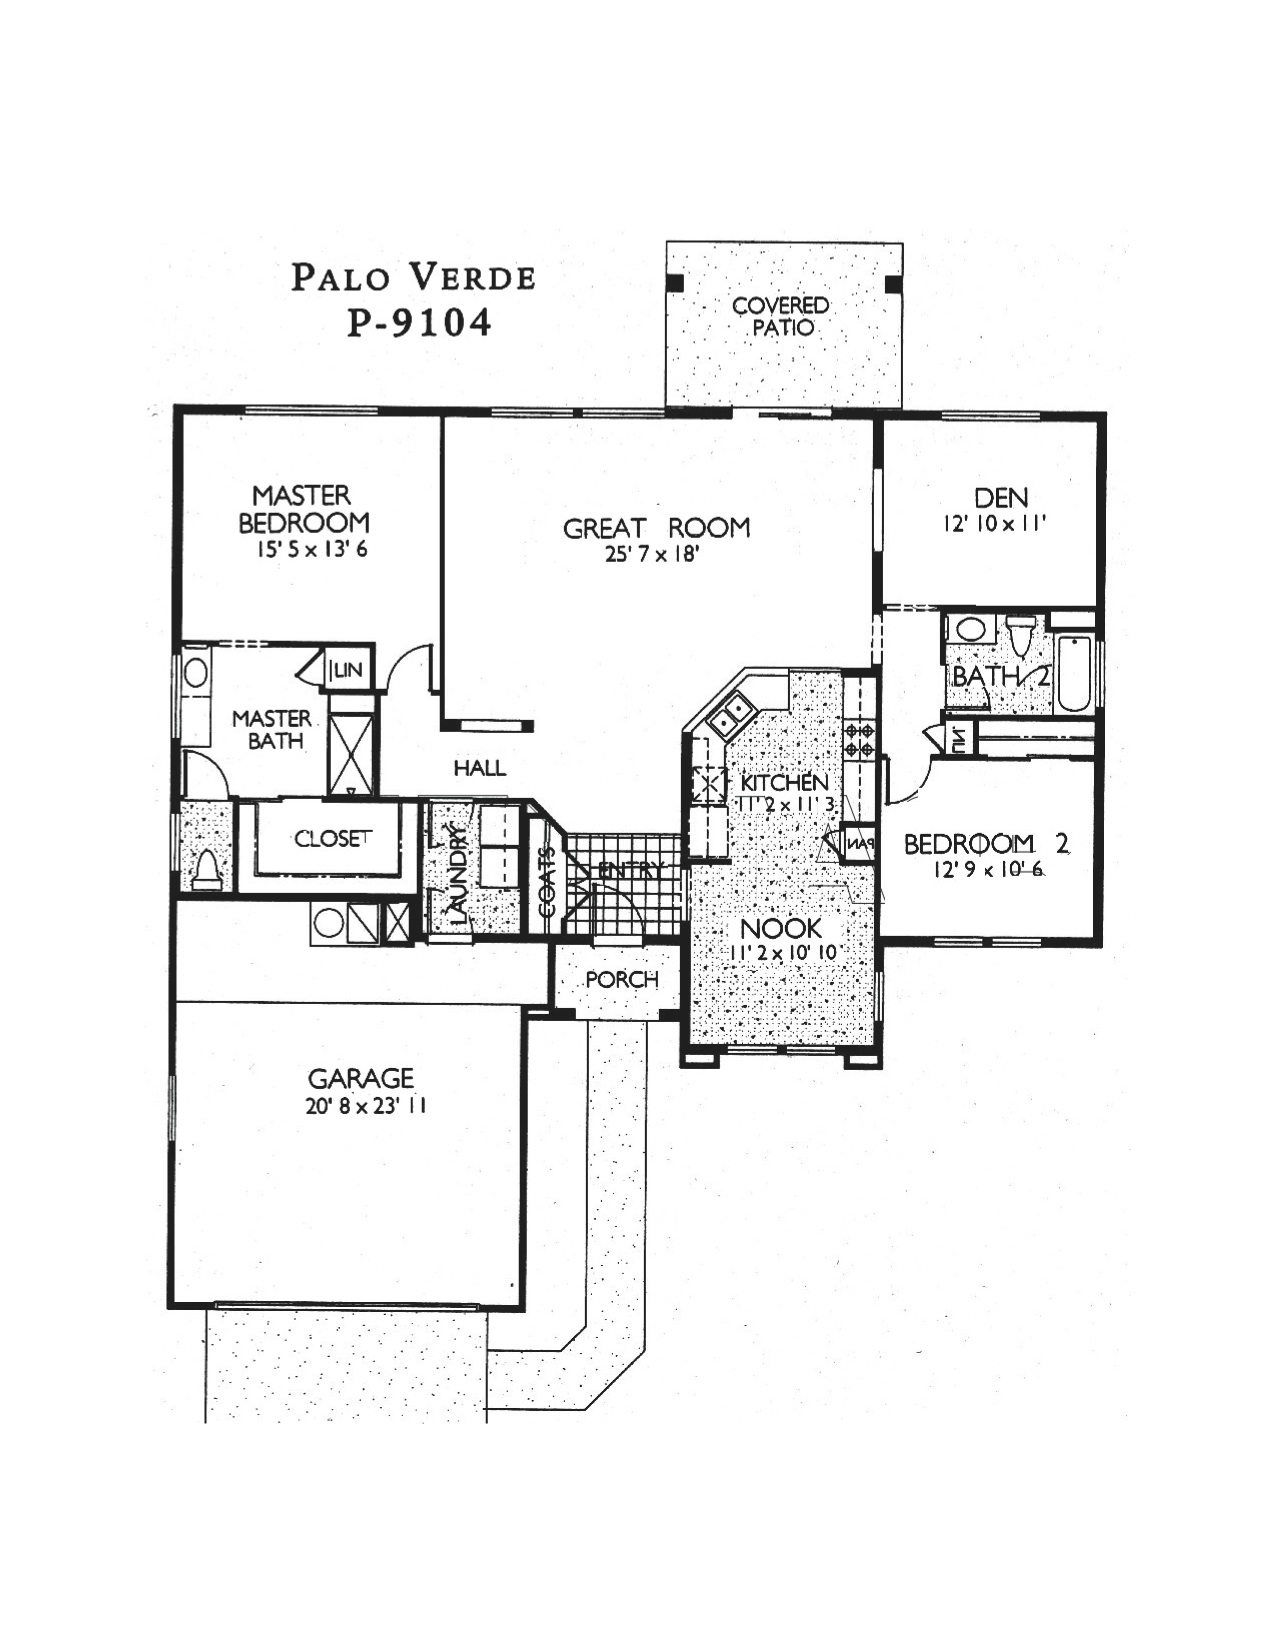 Sun city grand floor plans jos e marie plant pllc gri for Palo verde homes floor plans